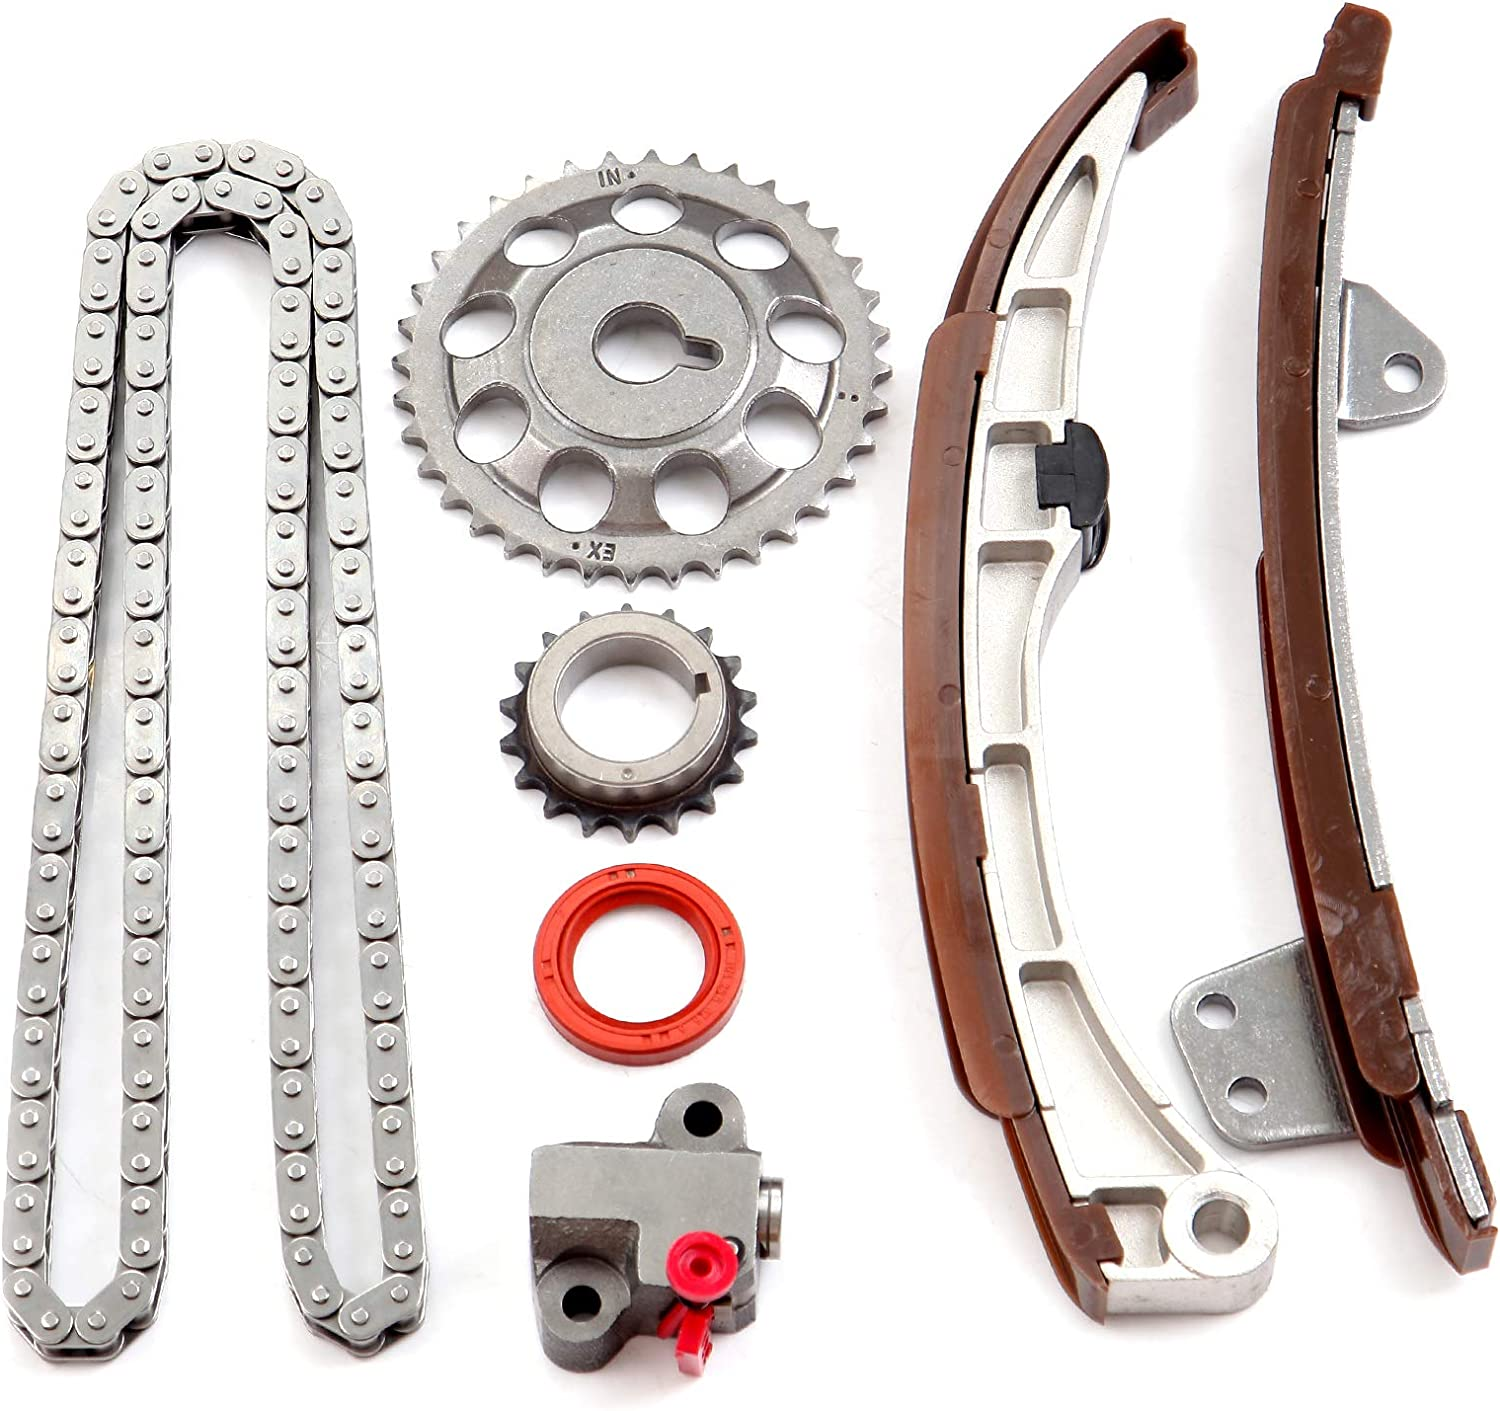 OCPTY 13540-21020R4 Timing Chain Kits with Crank Sprocket compatible with 2005 2006 Scion xB 2005 2006 Scion xA 2004 2005 Toyota Echo 2008 2009 Toyota Prius 2012 2013 Toyota Prius C 2012 Toyota Yaris